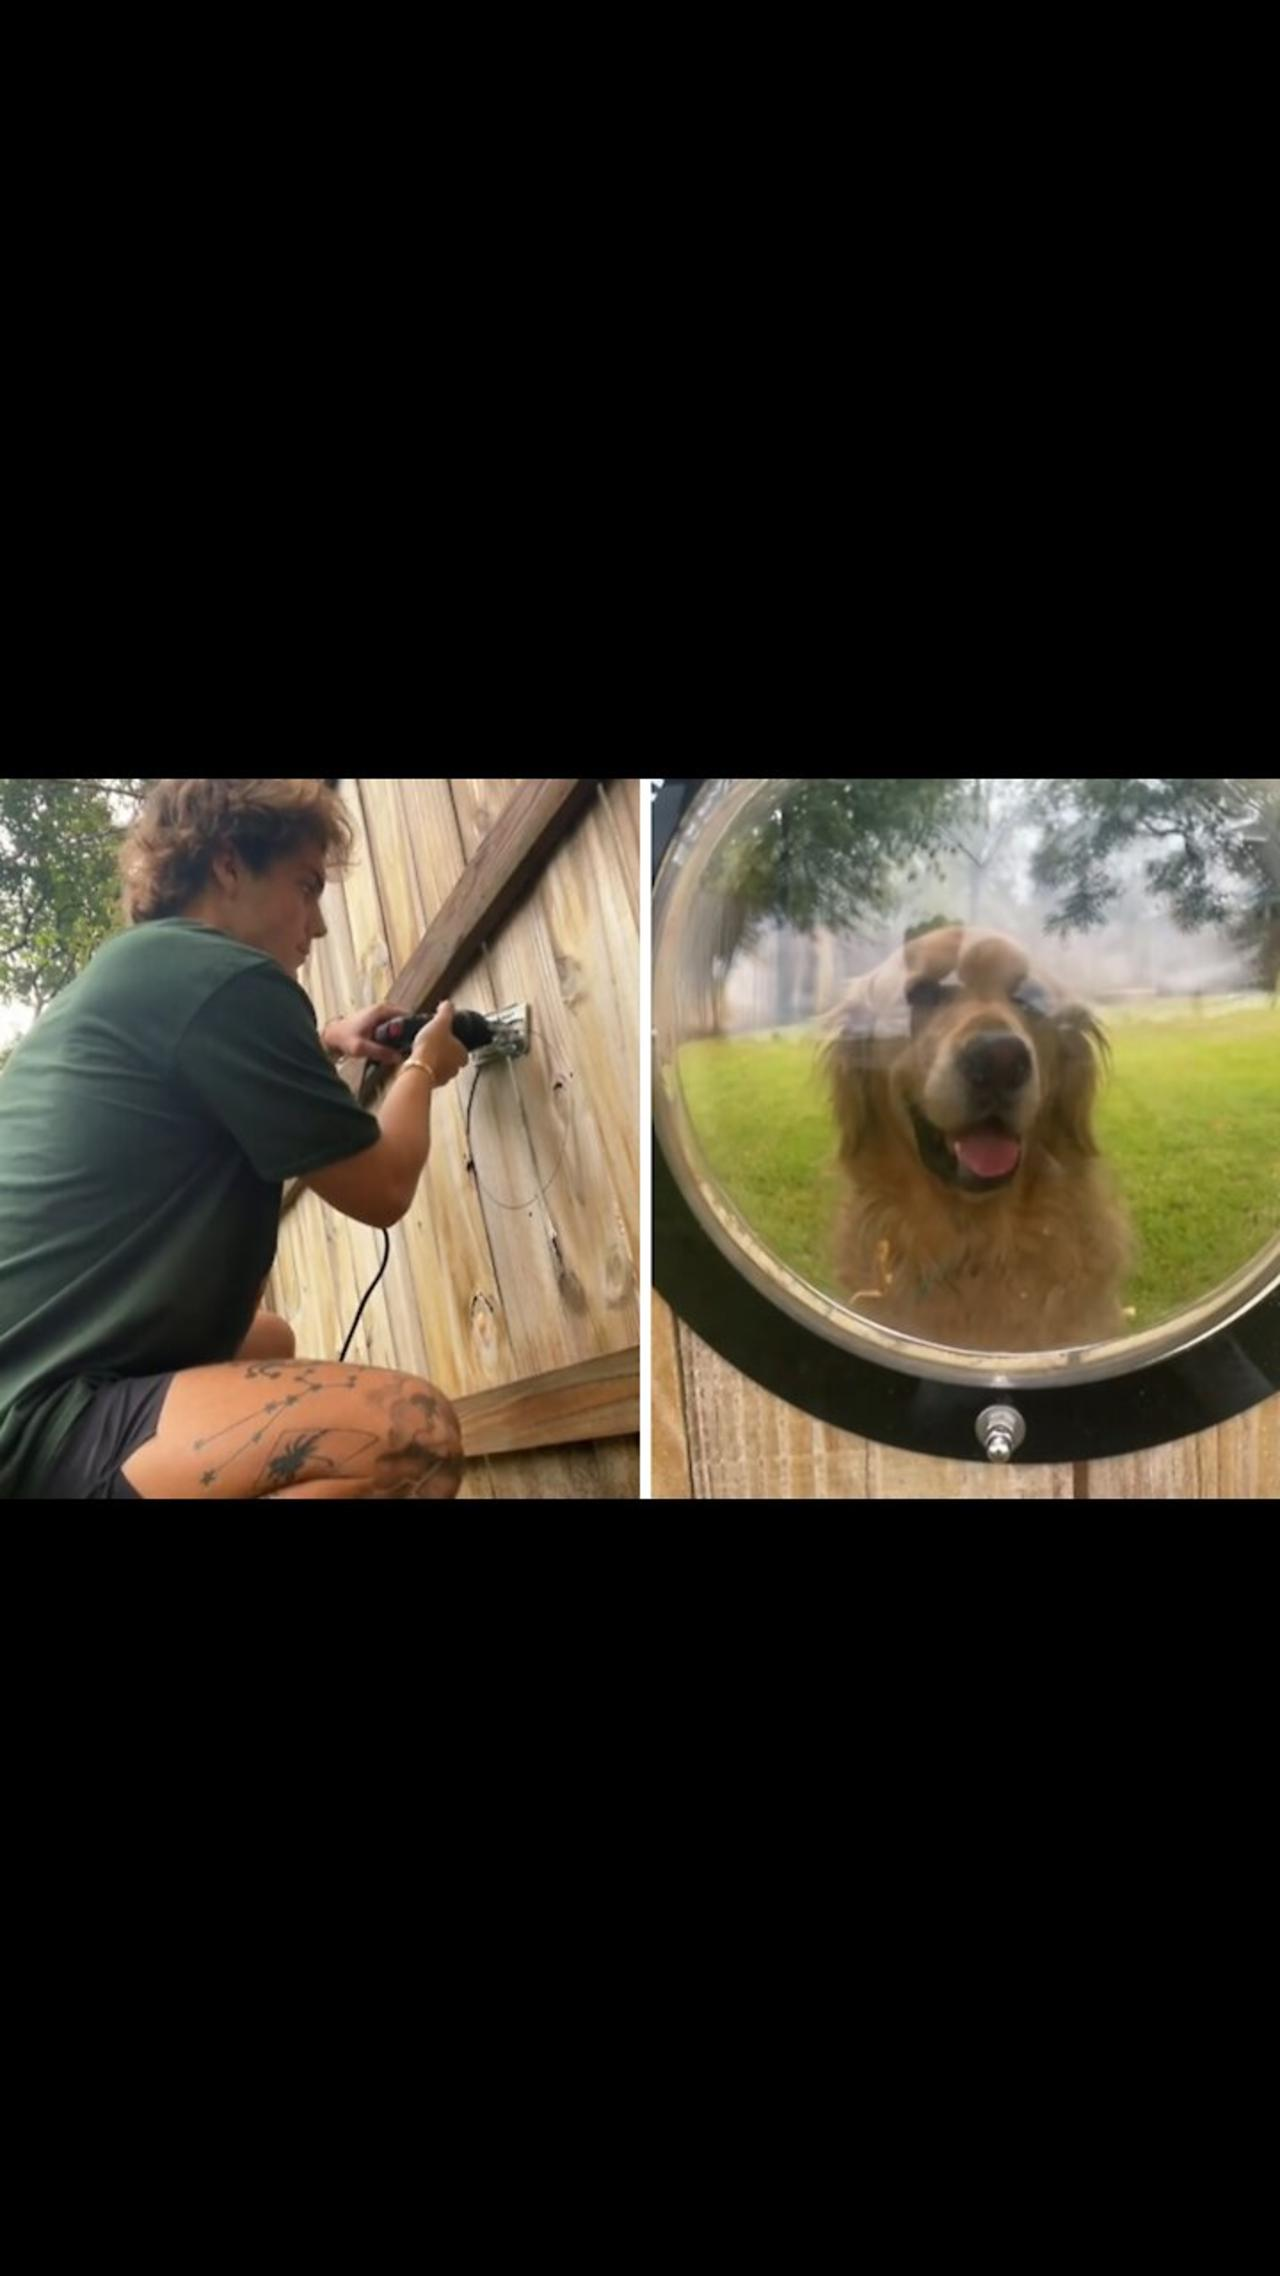 Guy puts window in fence for pup to see through